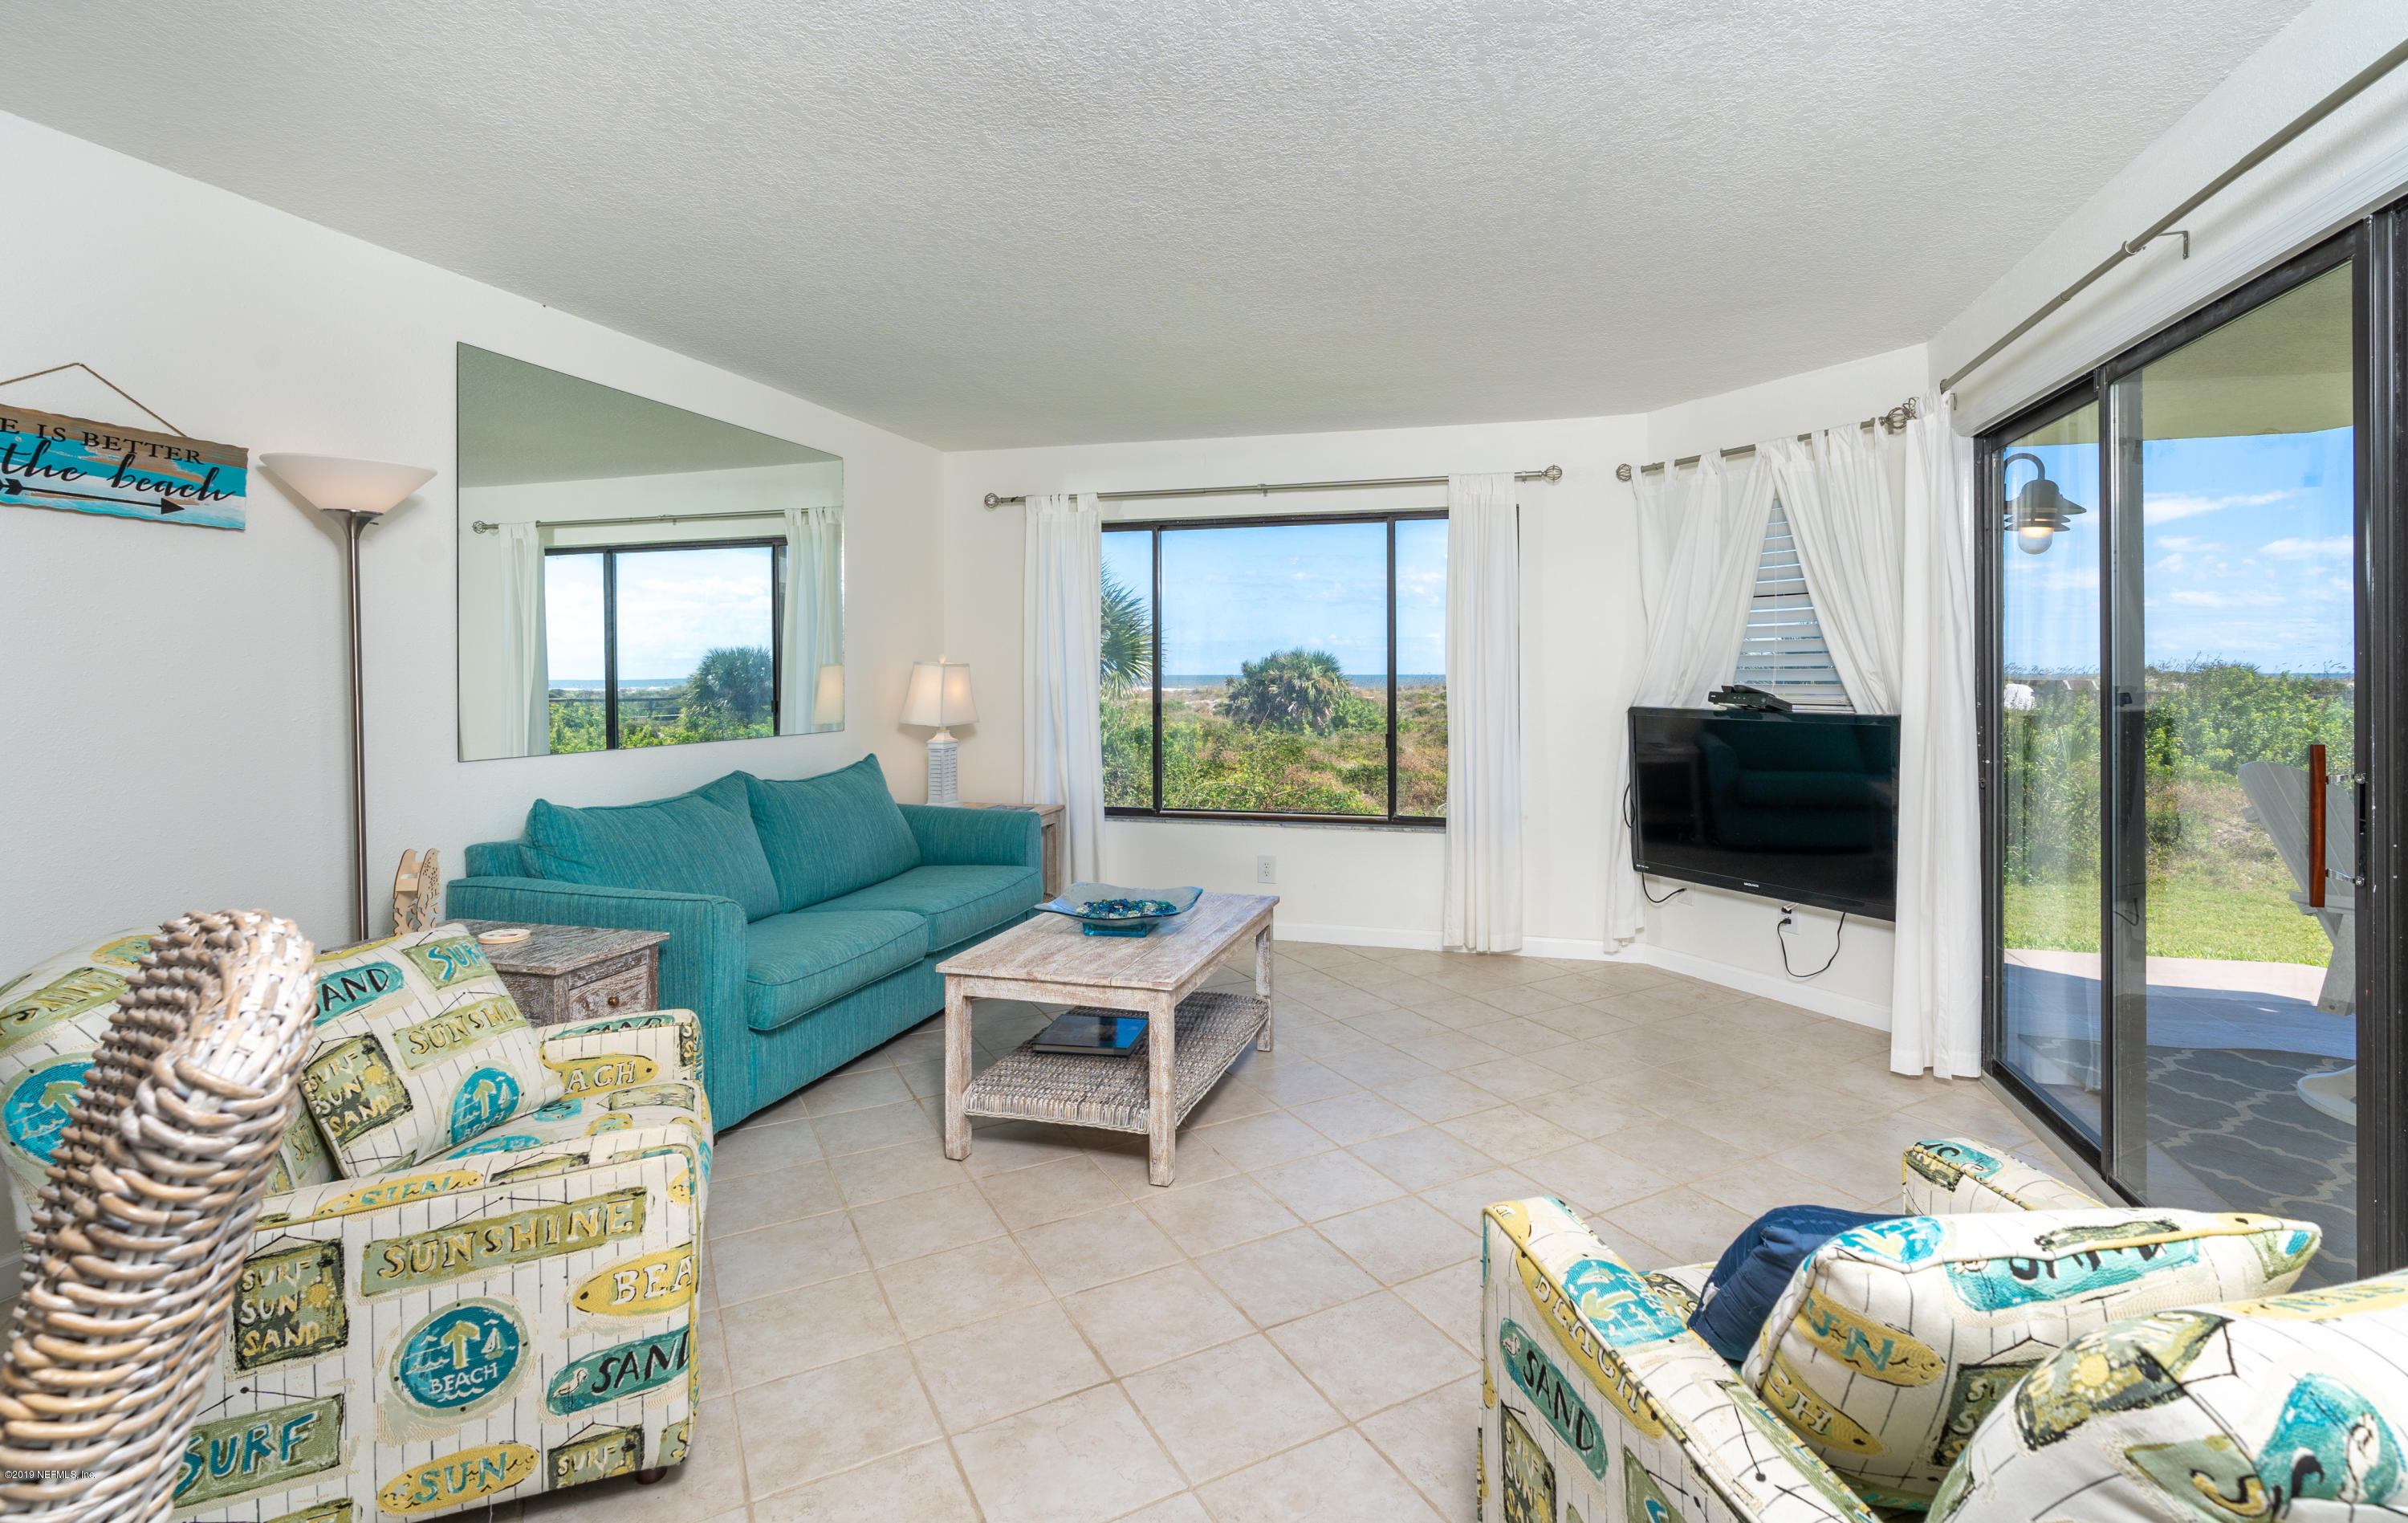 4670 A1A, ST AUGUSTINE, FLORIDA 32080, 3 Bedrooms Bedrooms, ,2 BathroomsBathrooms,Condo,For sale,A1A,1020290